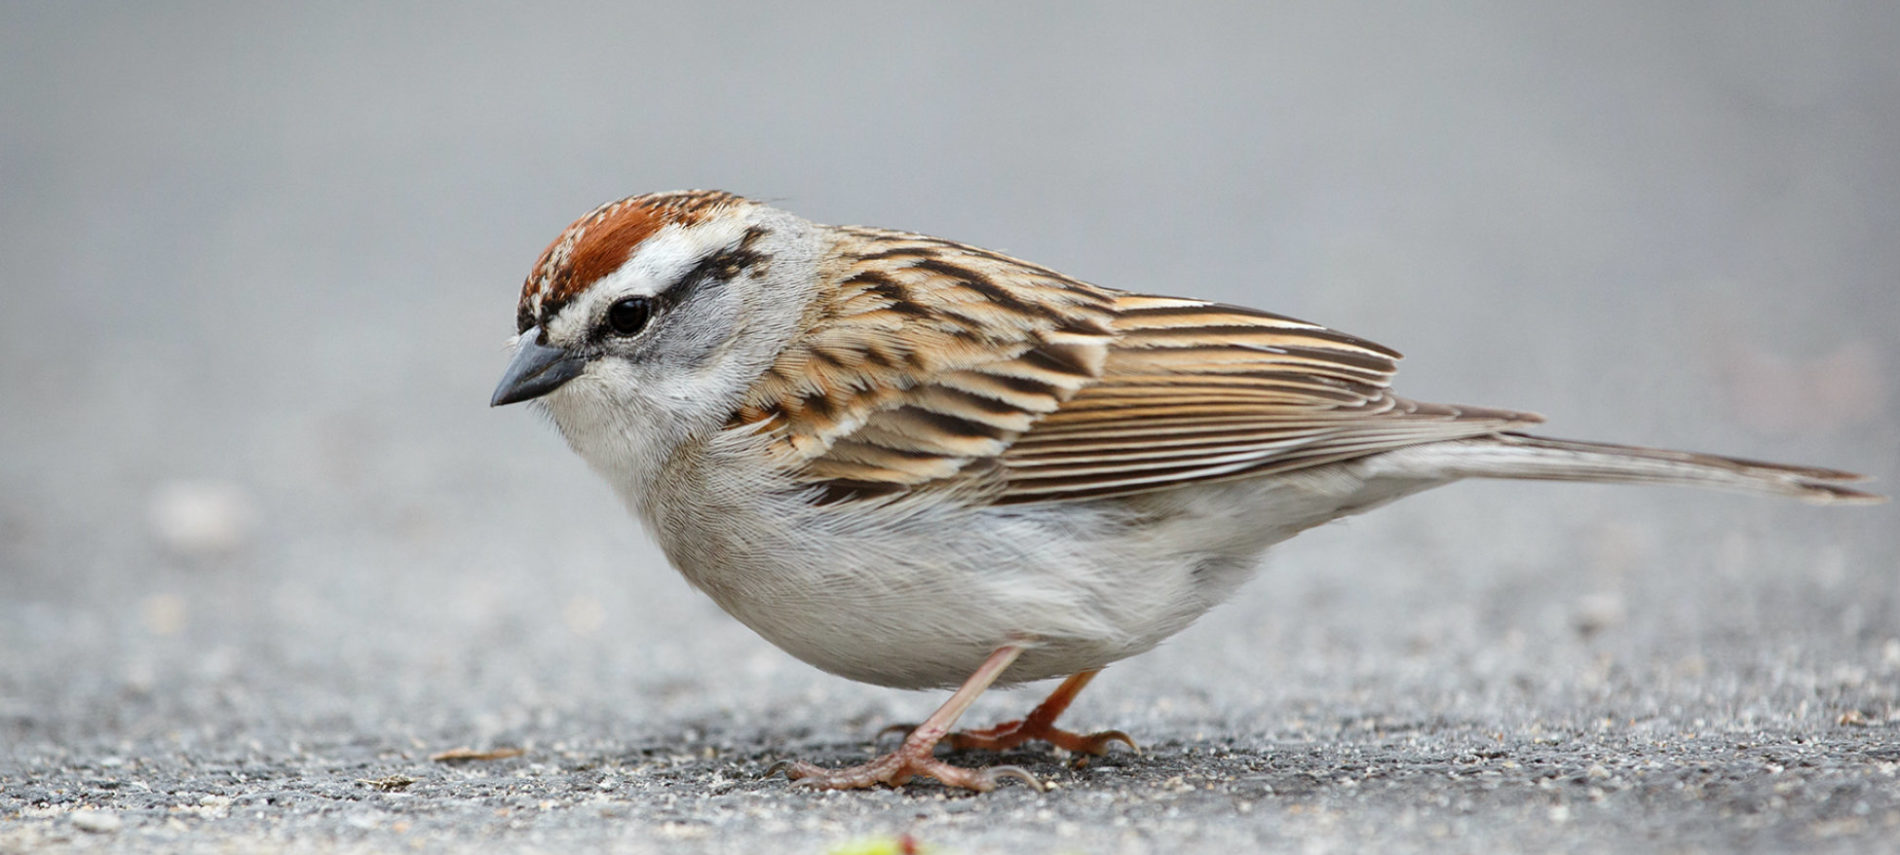 Chipping Sparrow By Vkulikov (Own work) [CC BY-SA 3.0 (http://creativecommons.org/licenses/by-sa/3.0)], via Wikimedia Commons